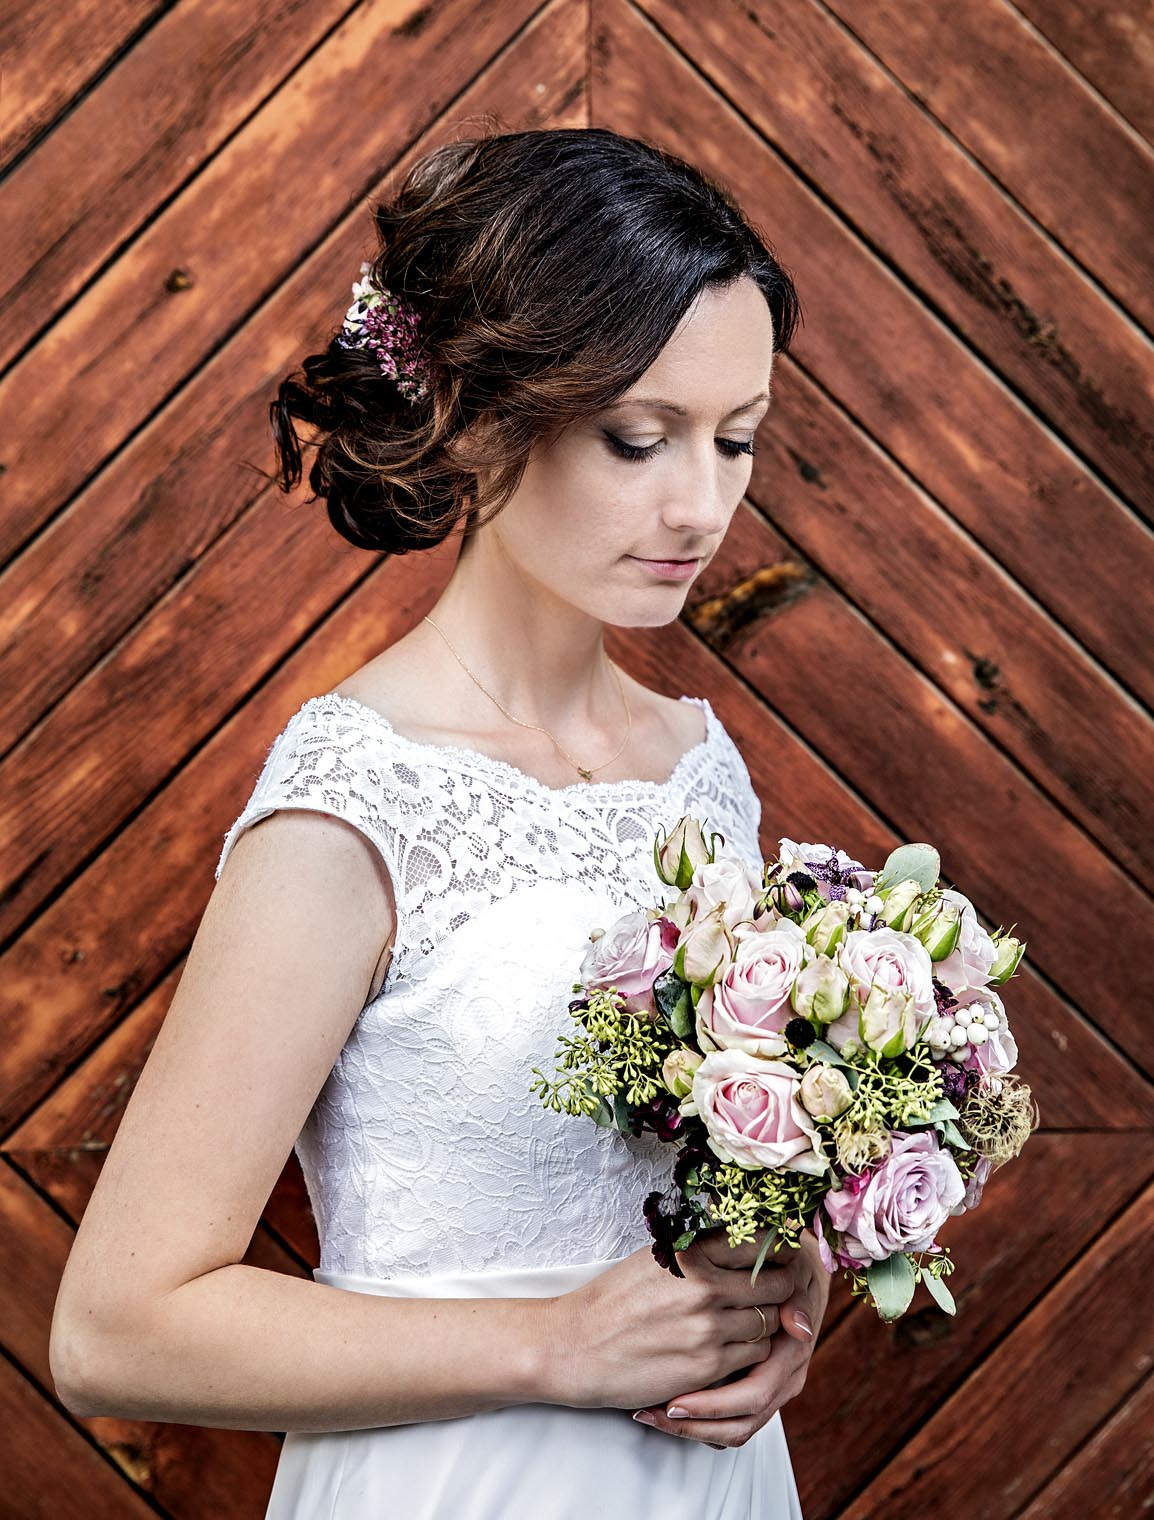 wedding_thomas_simone_bride_dress_flowers_smile2